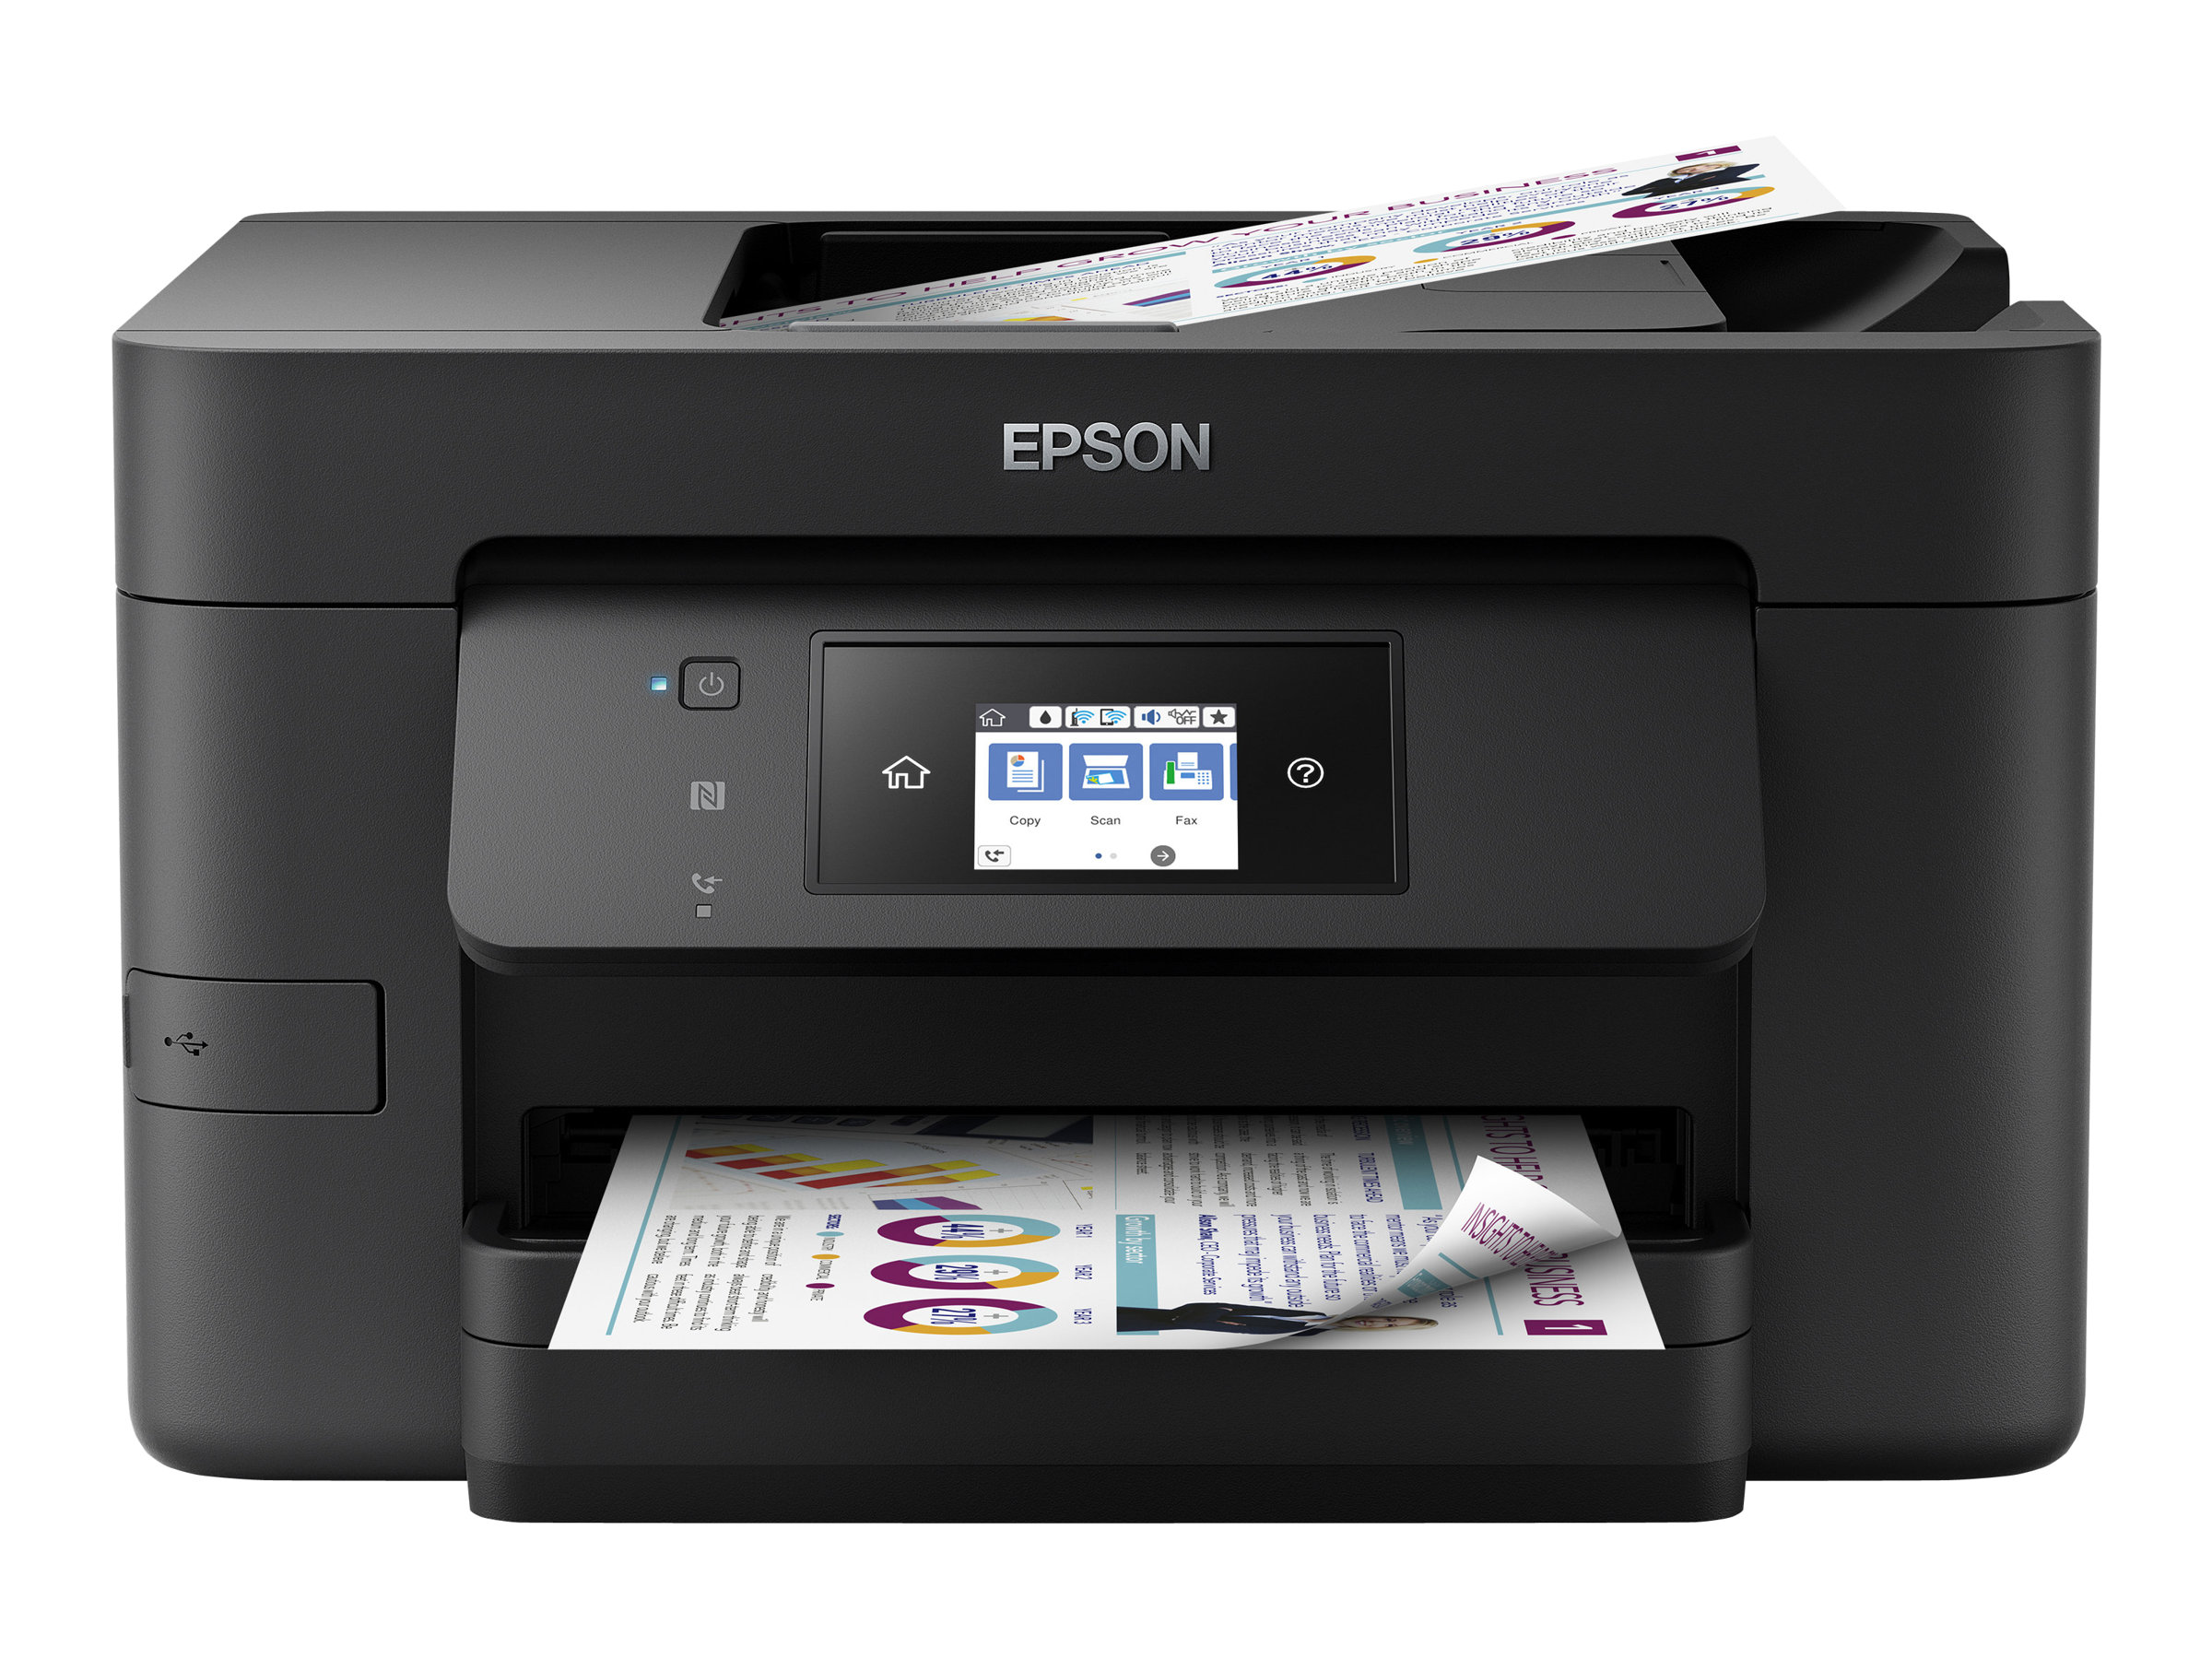 Imprimante EPSON WorkForce Pro WF 4720 DWF vue avant